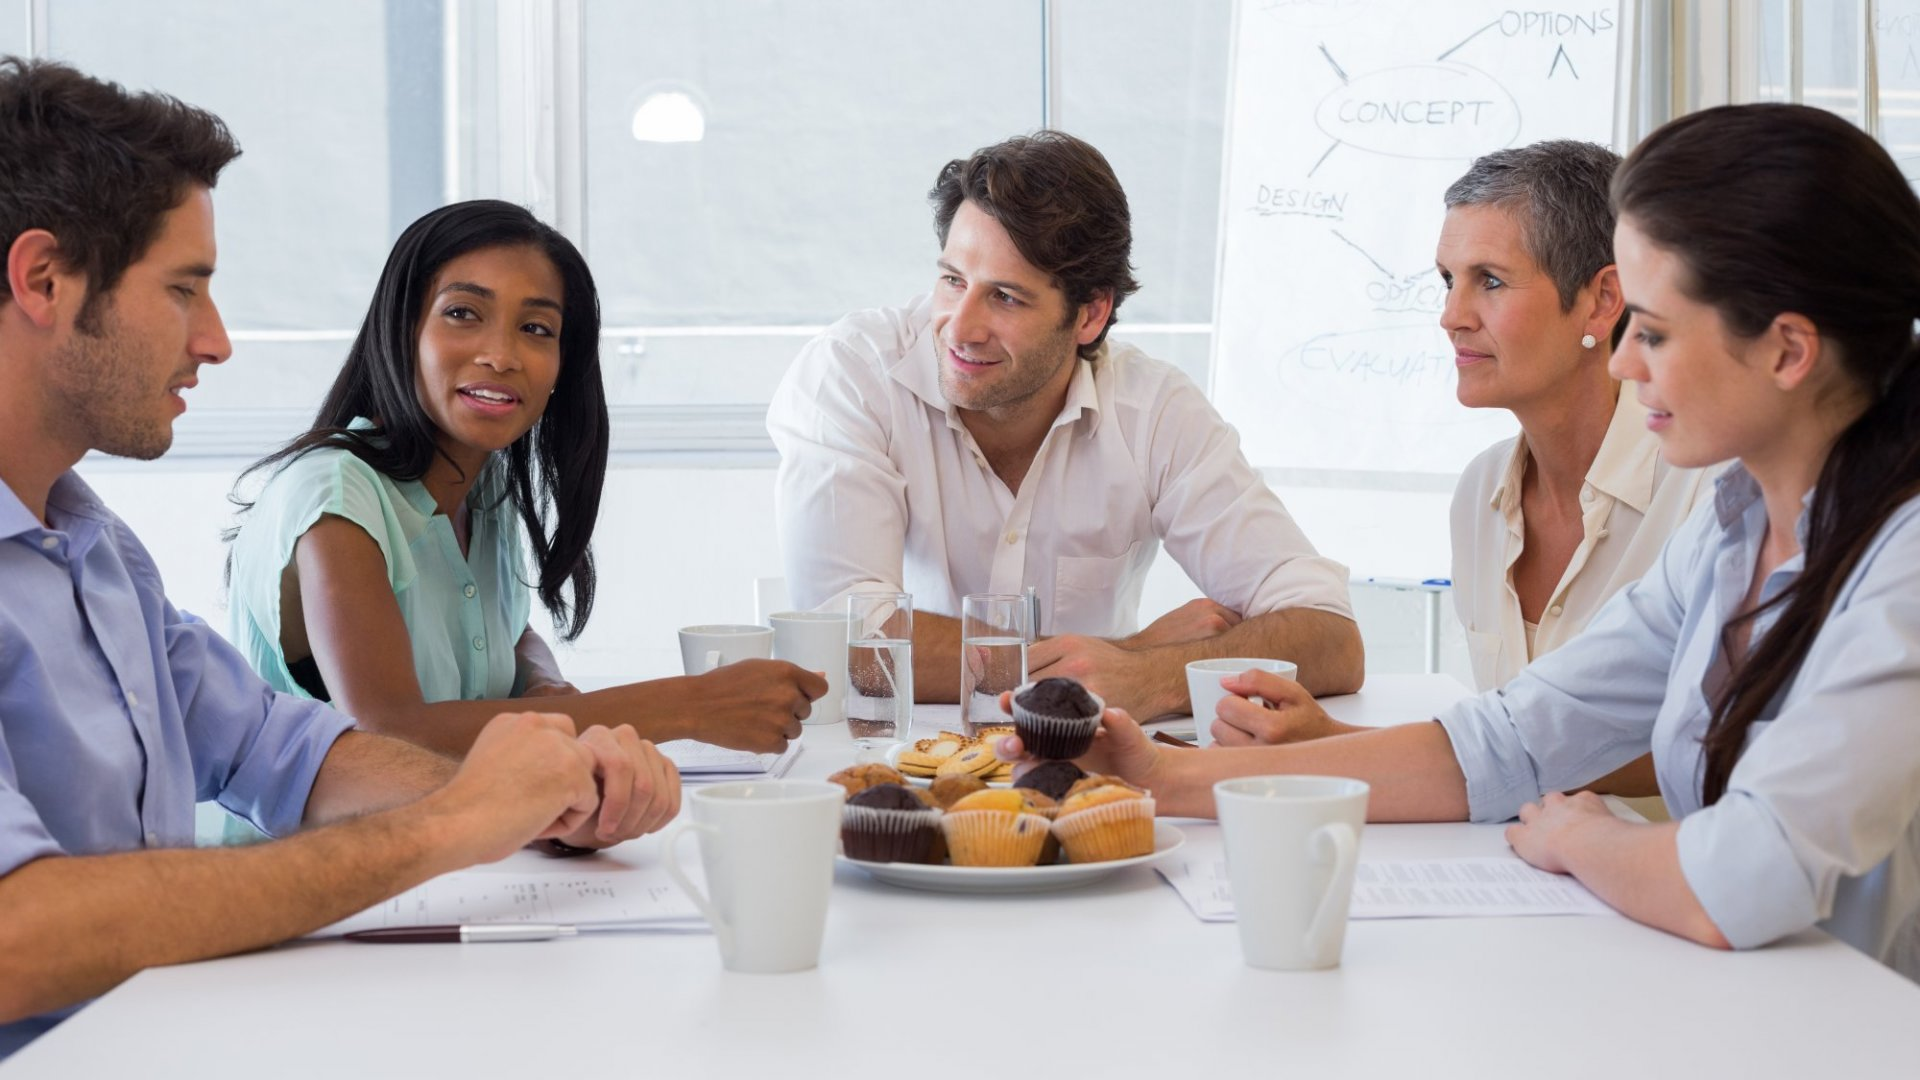 Women: Don't Bring Cupcakes to Work When You're New on the Job